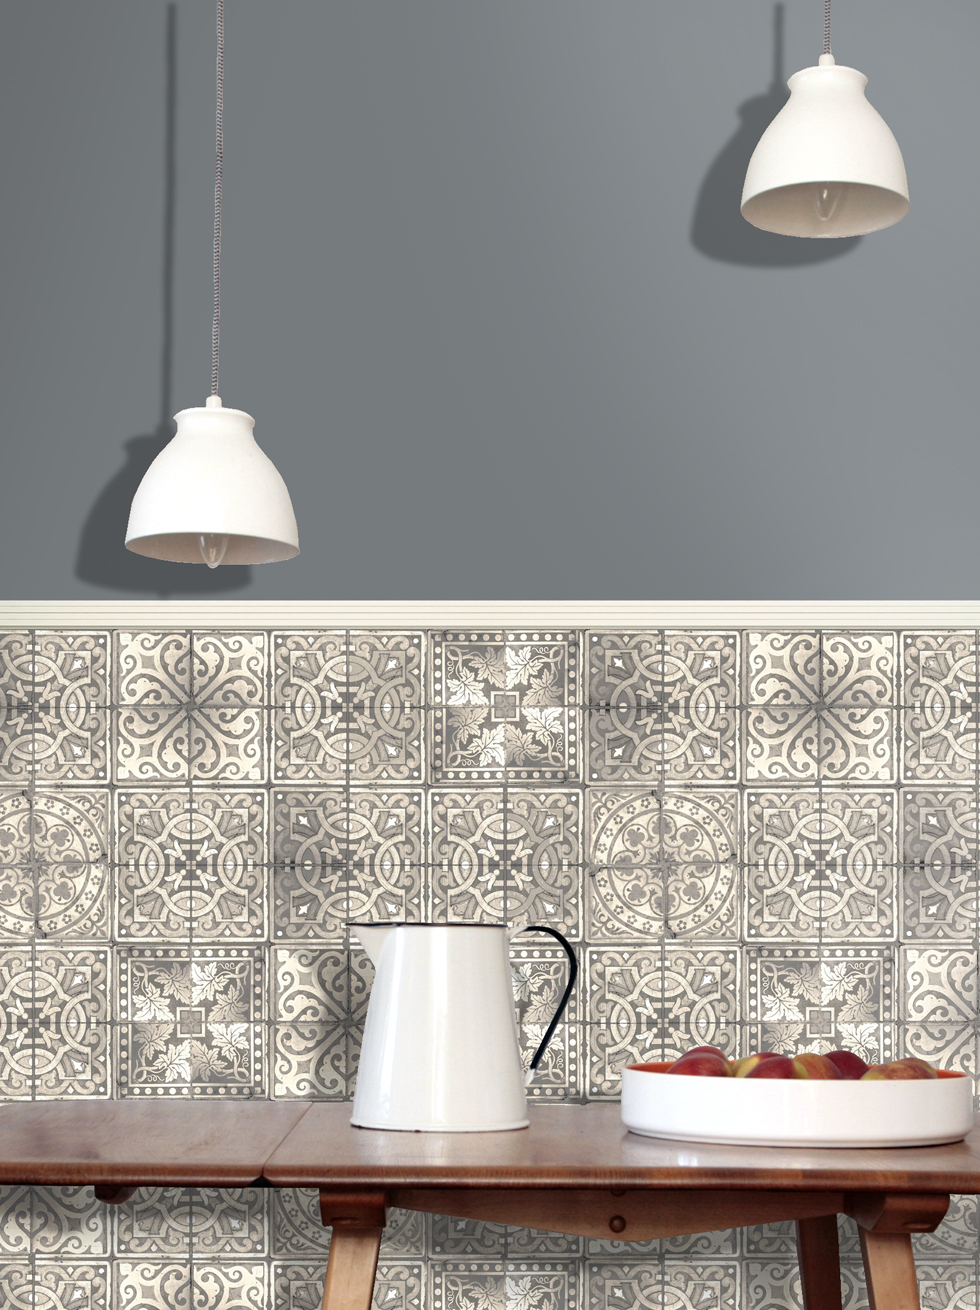 ... -peint-carrelage-cuisine-louise-body-patchwork-grey-tile-wallpaper